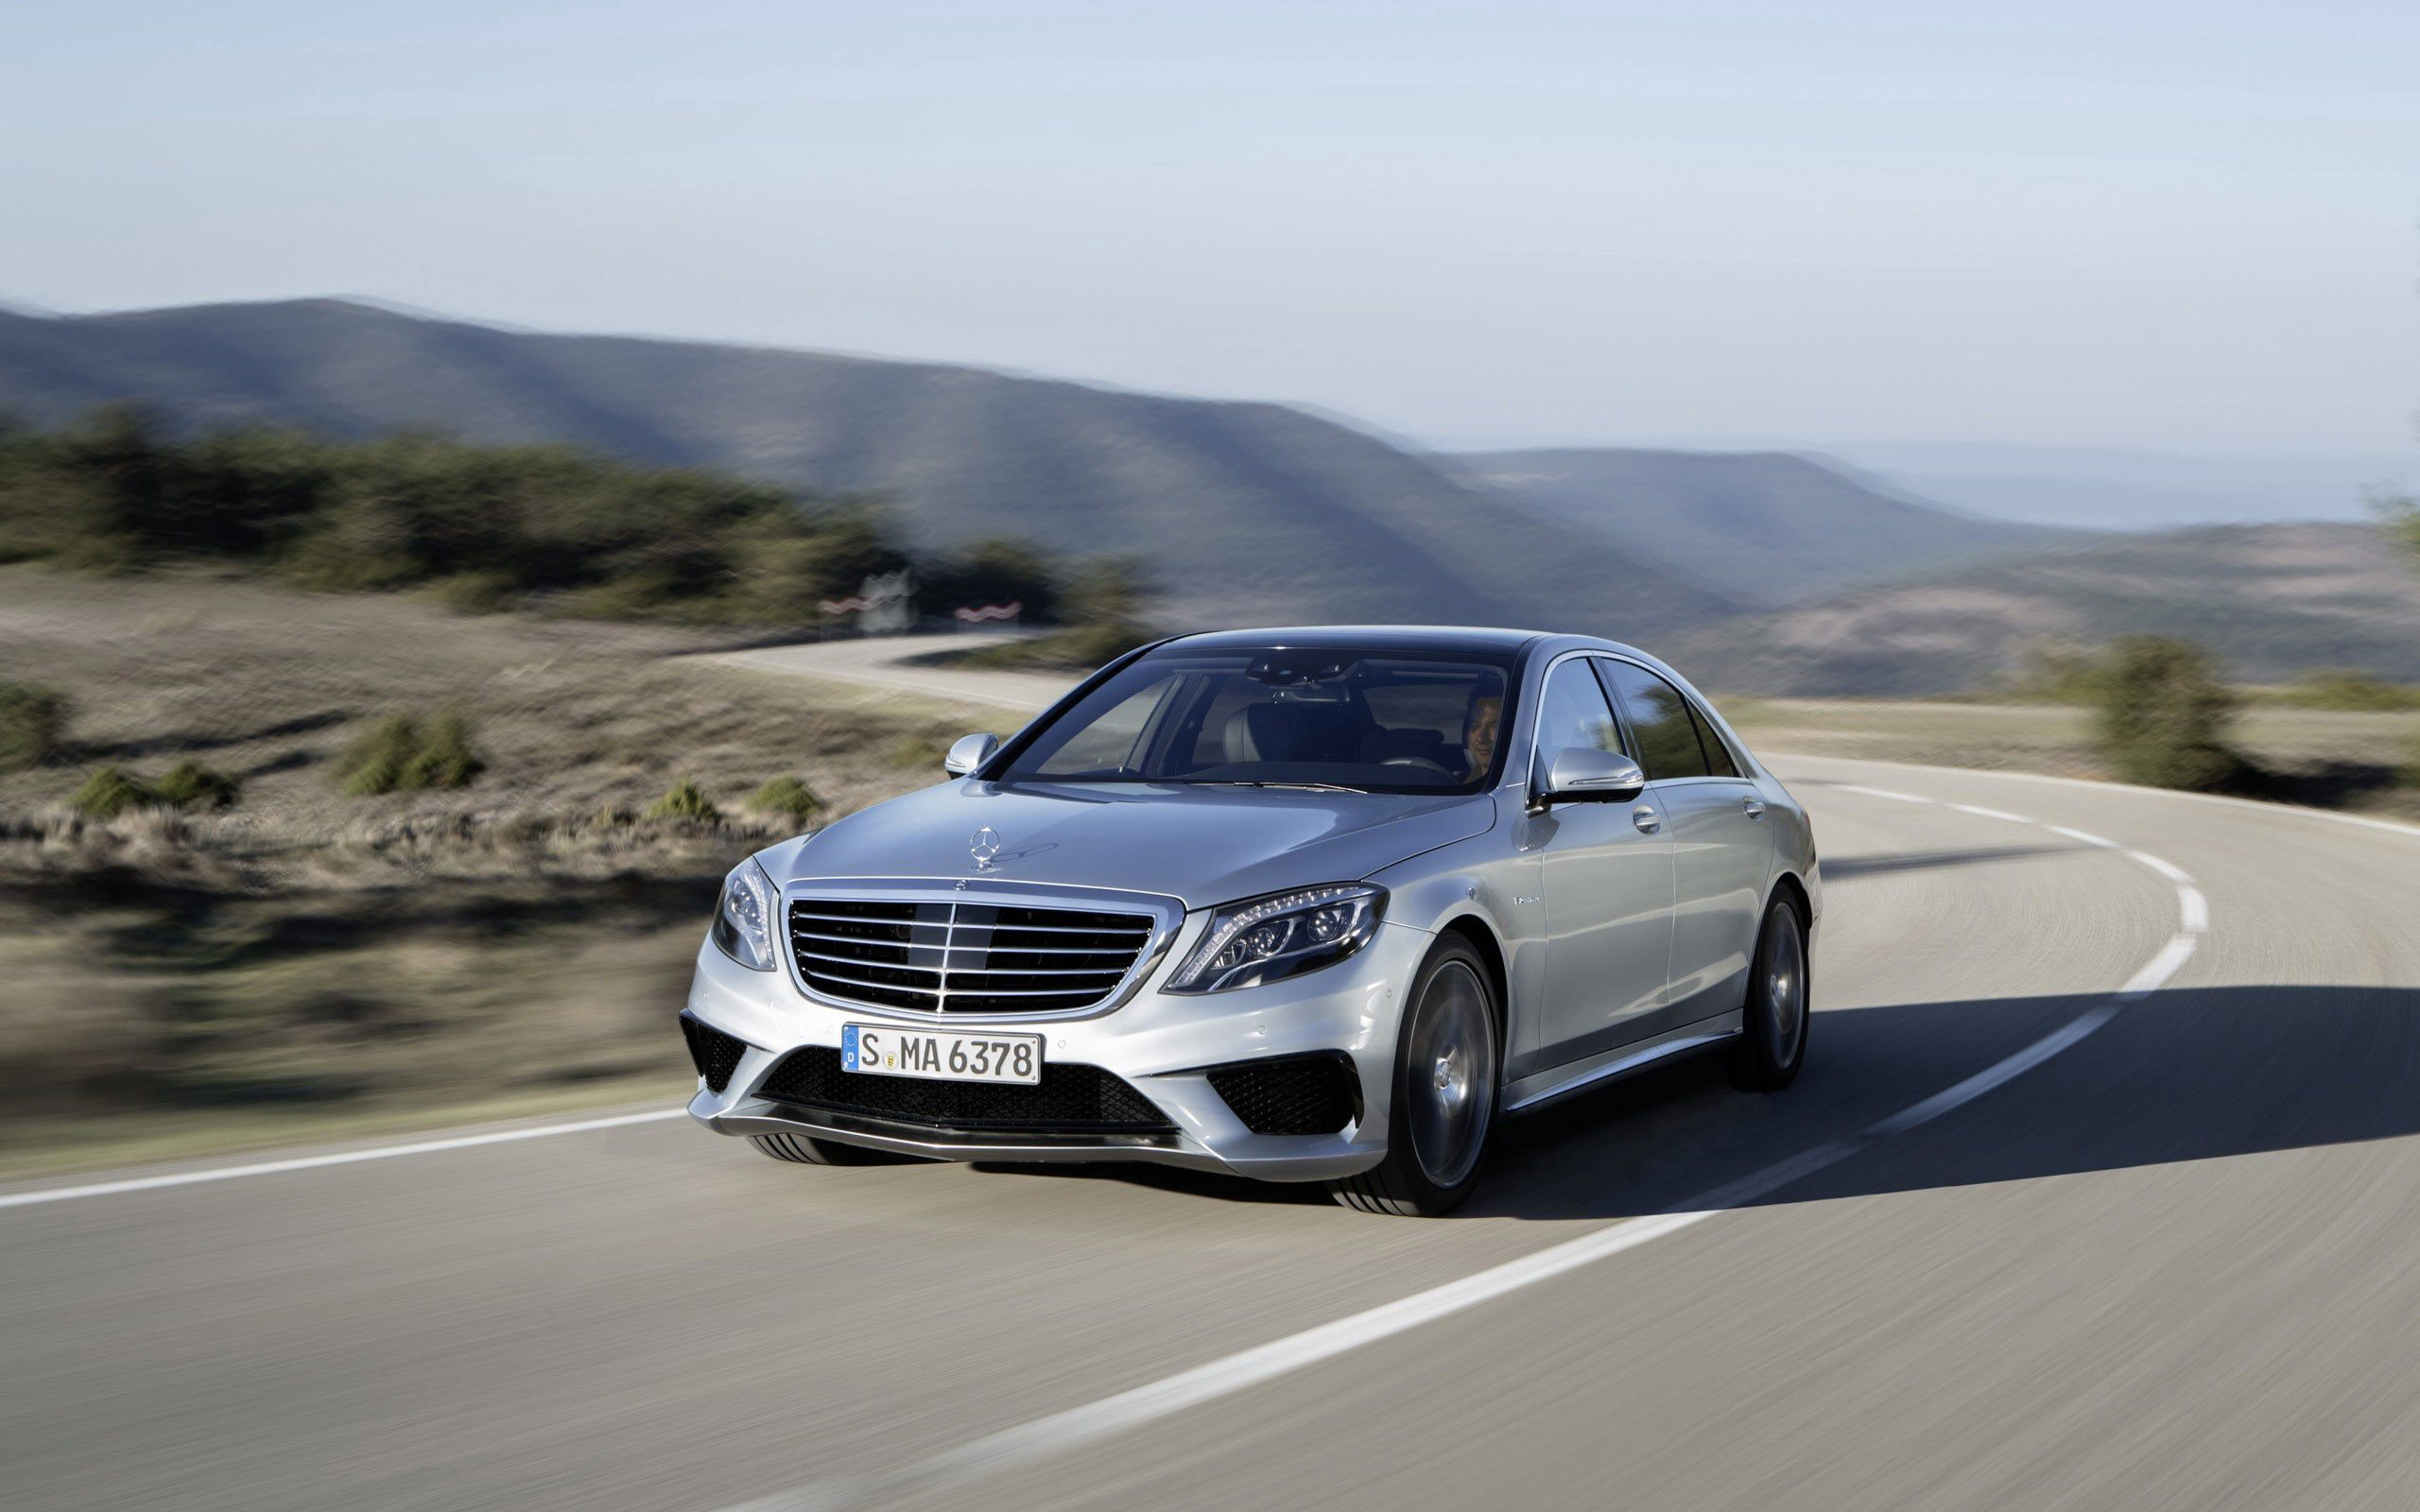 96597 download wallpaper Cars, Mercedes-Benz, 2014, Auto, Grey, Traffic, Movement, Speed screensavers and pictures for free